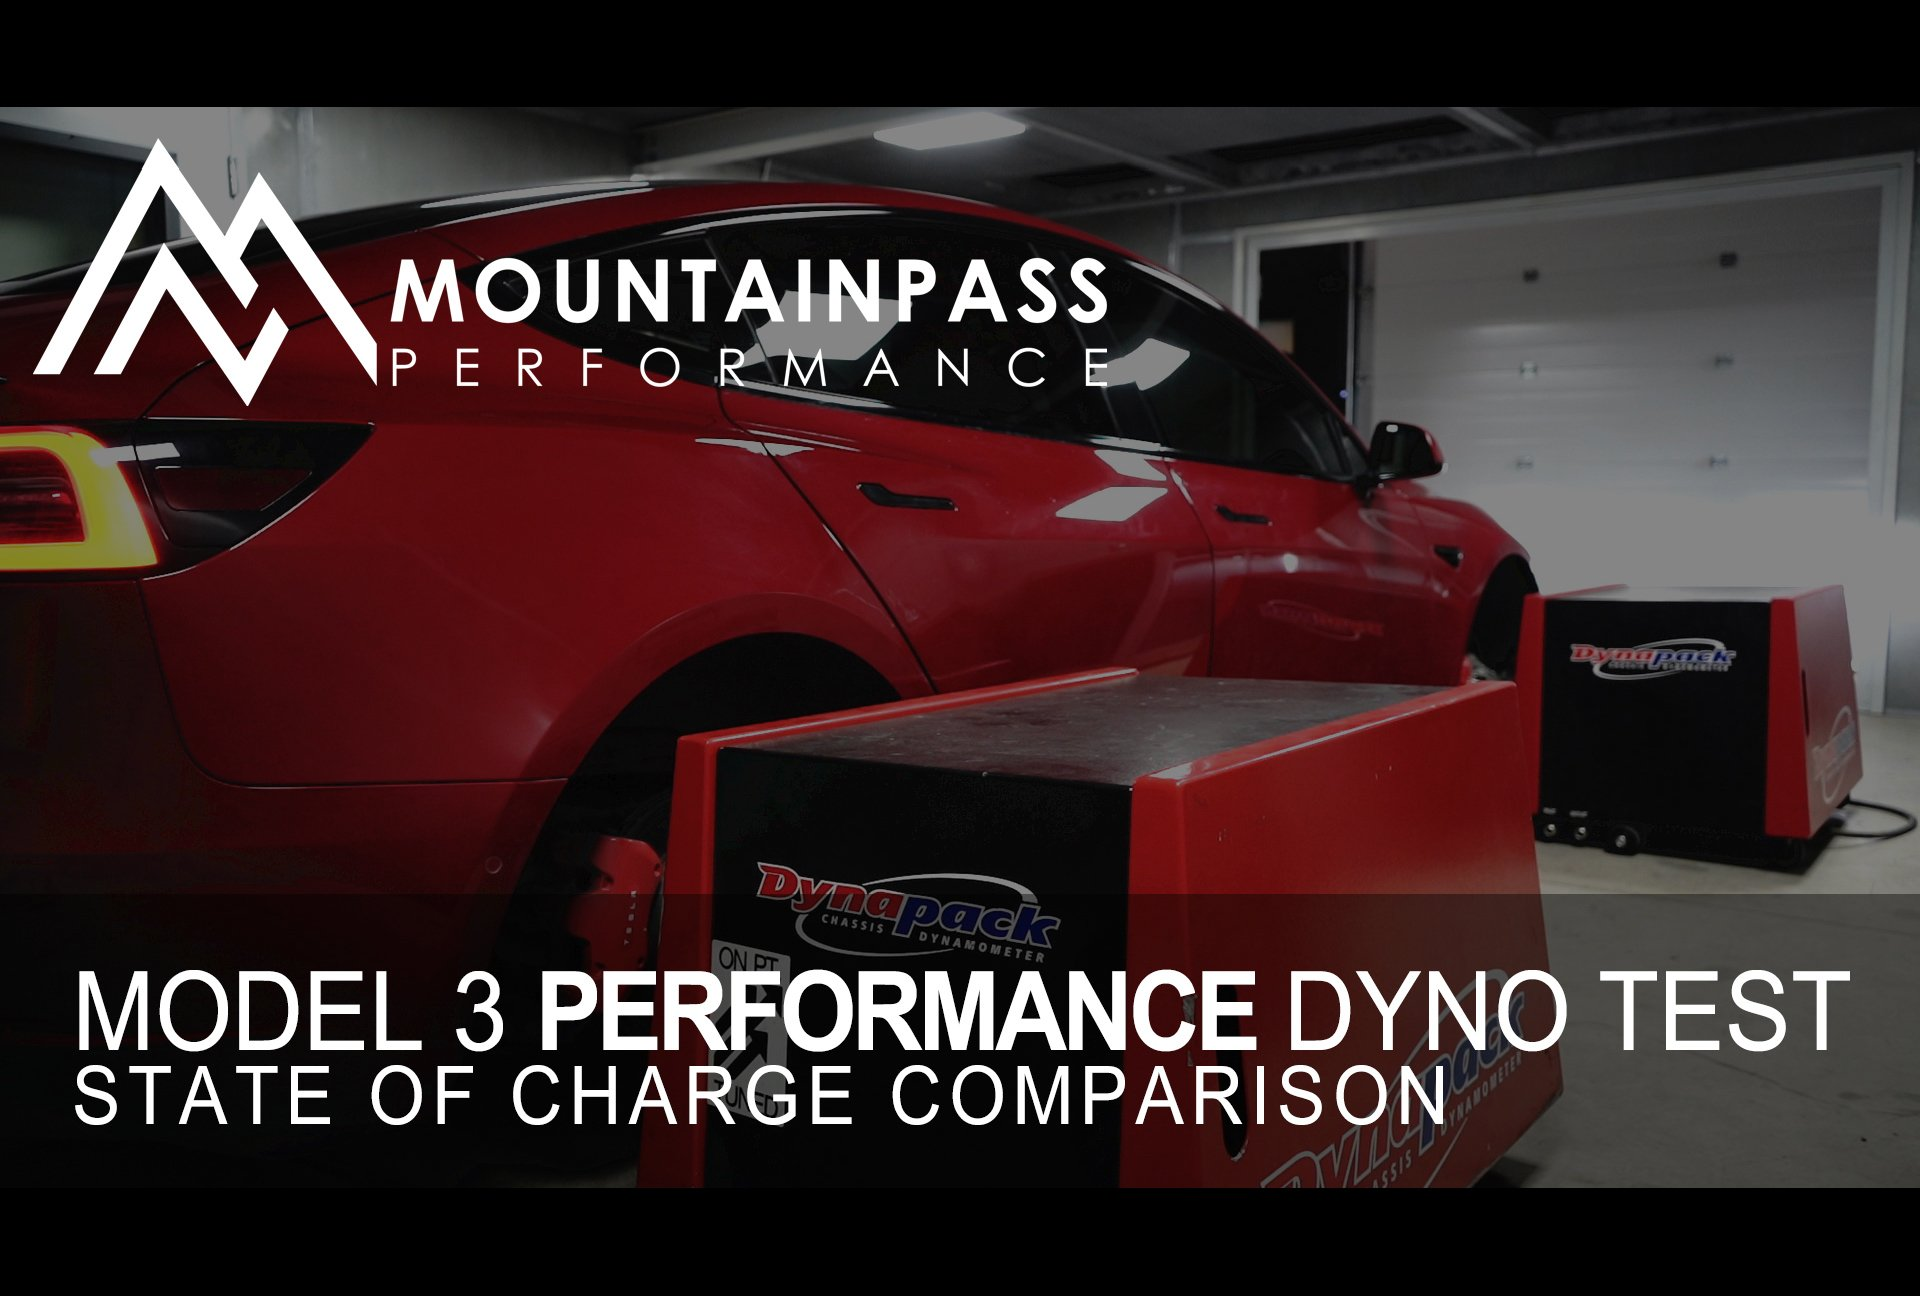 www.mountainpassperformance.com